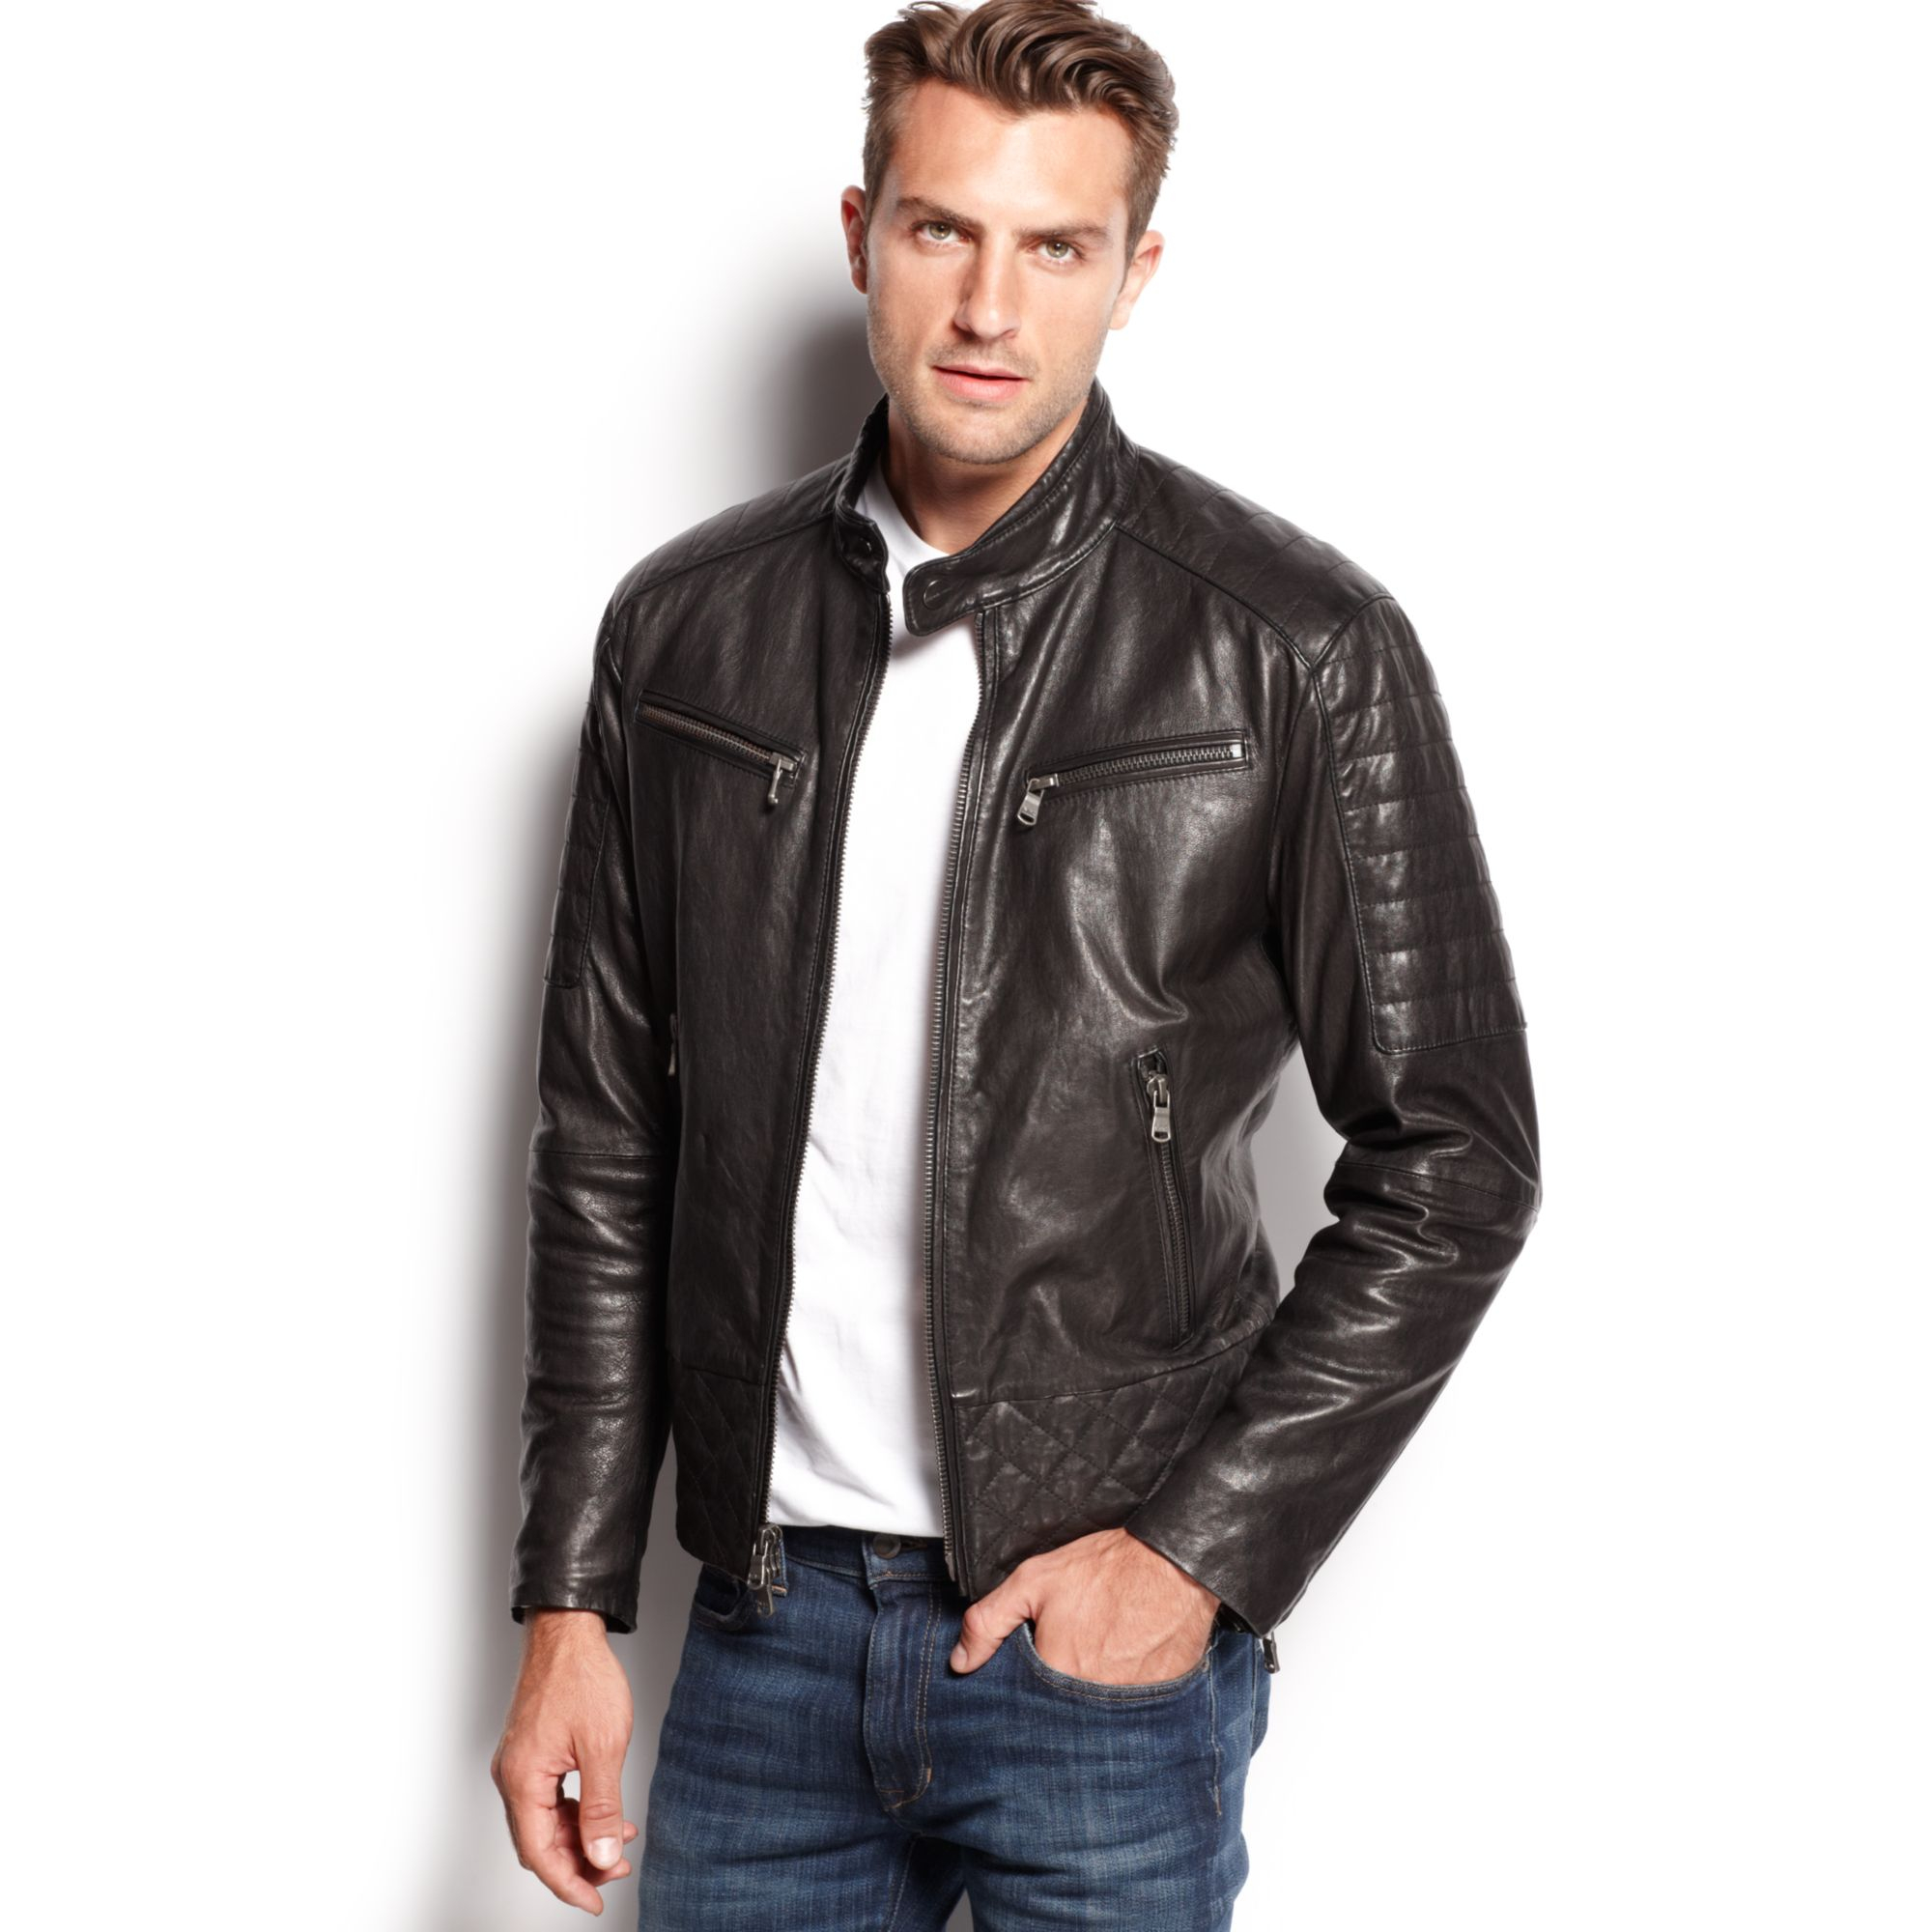 Leather care products for jackets